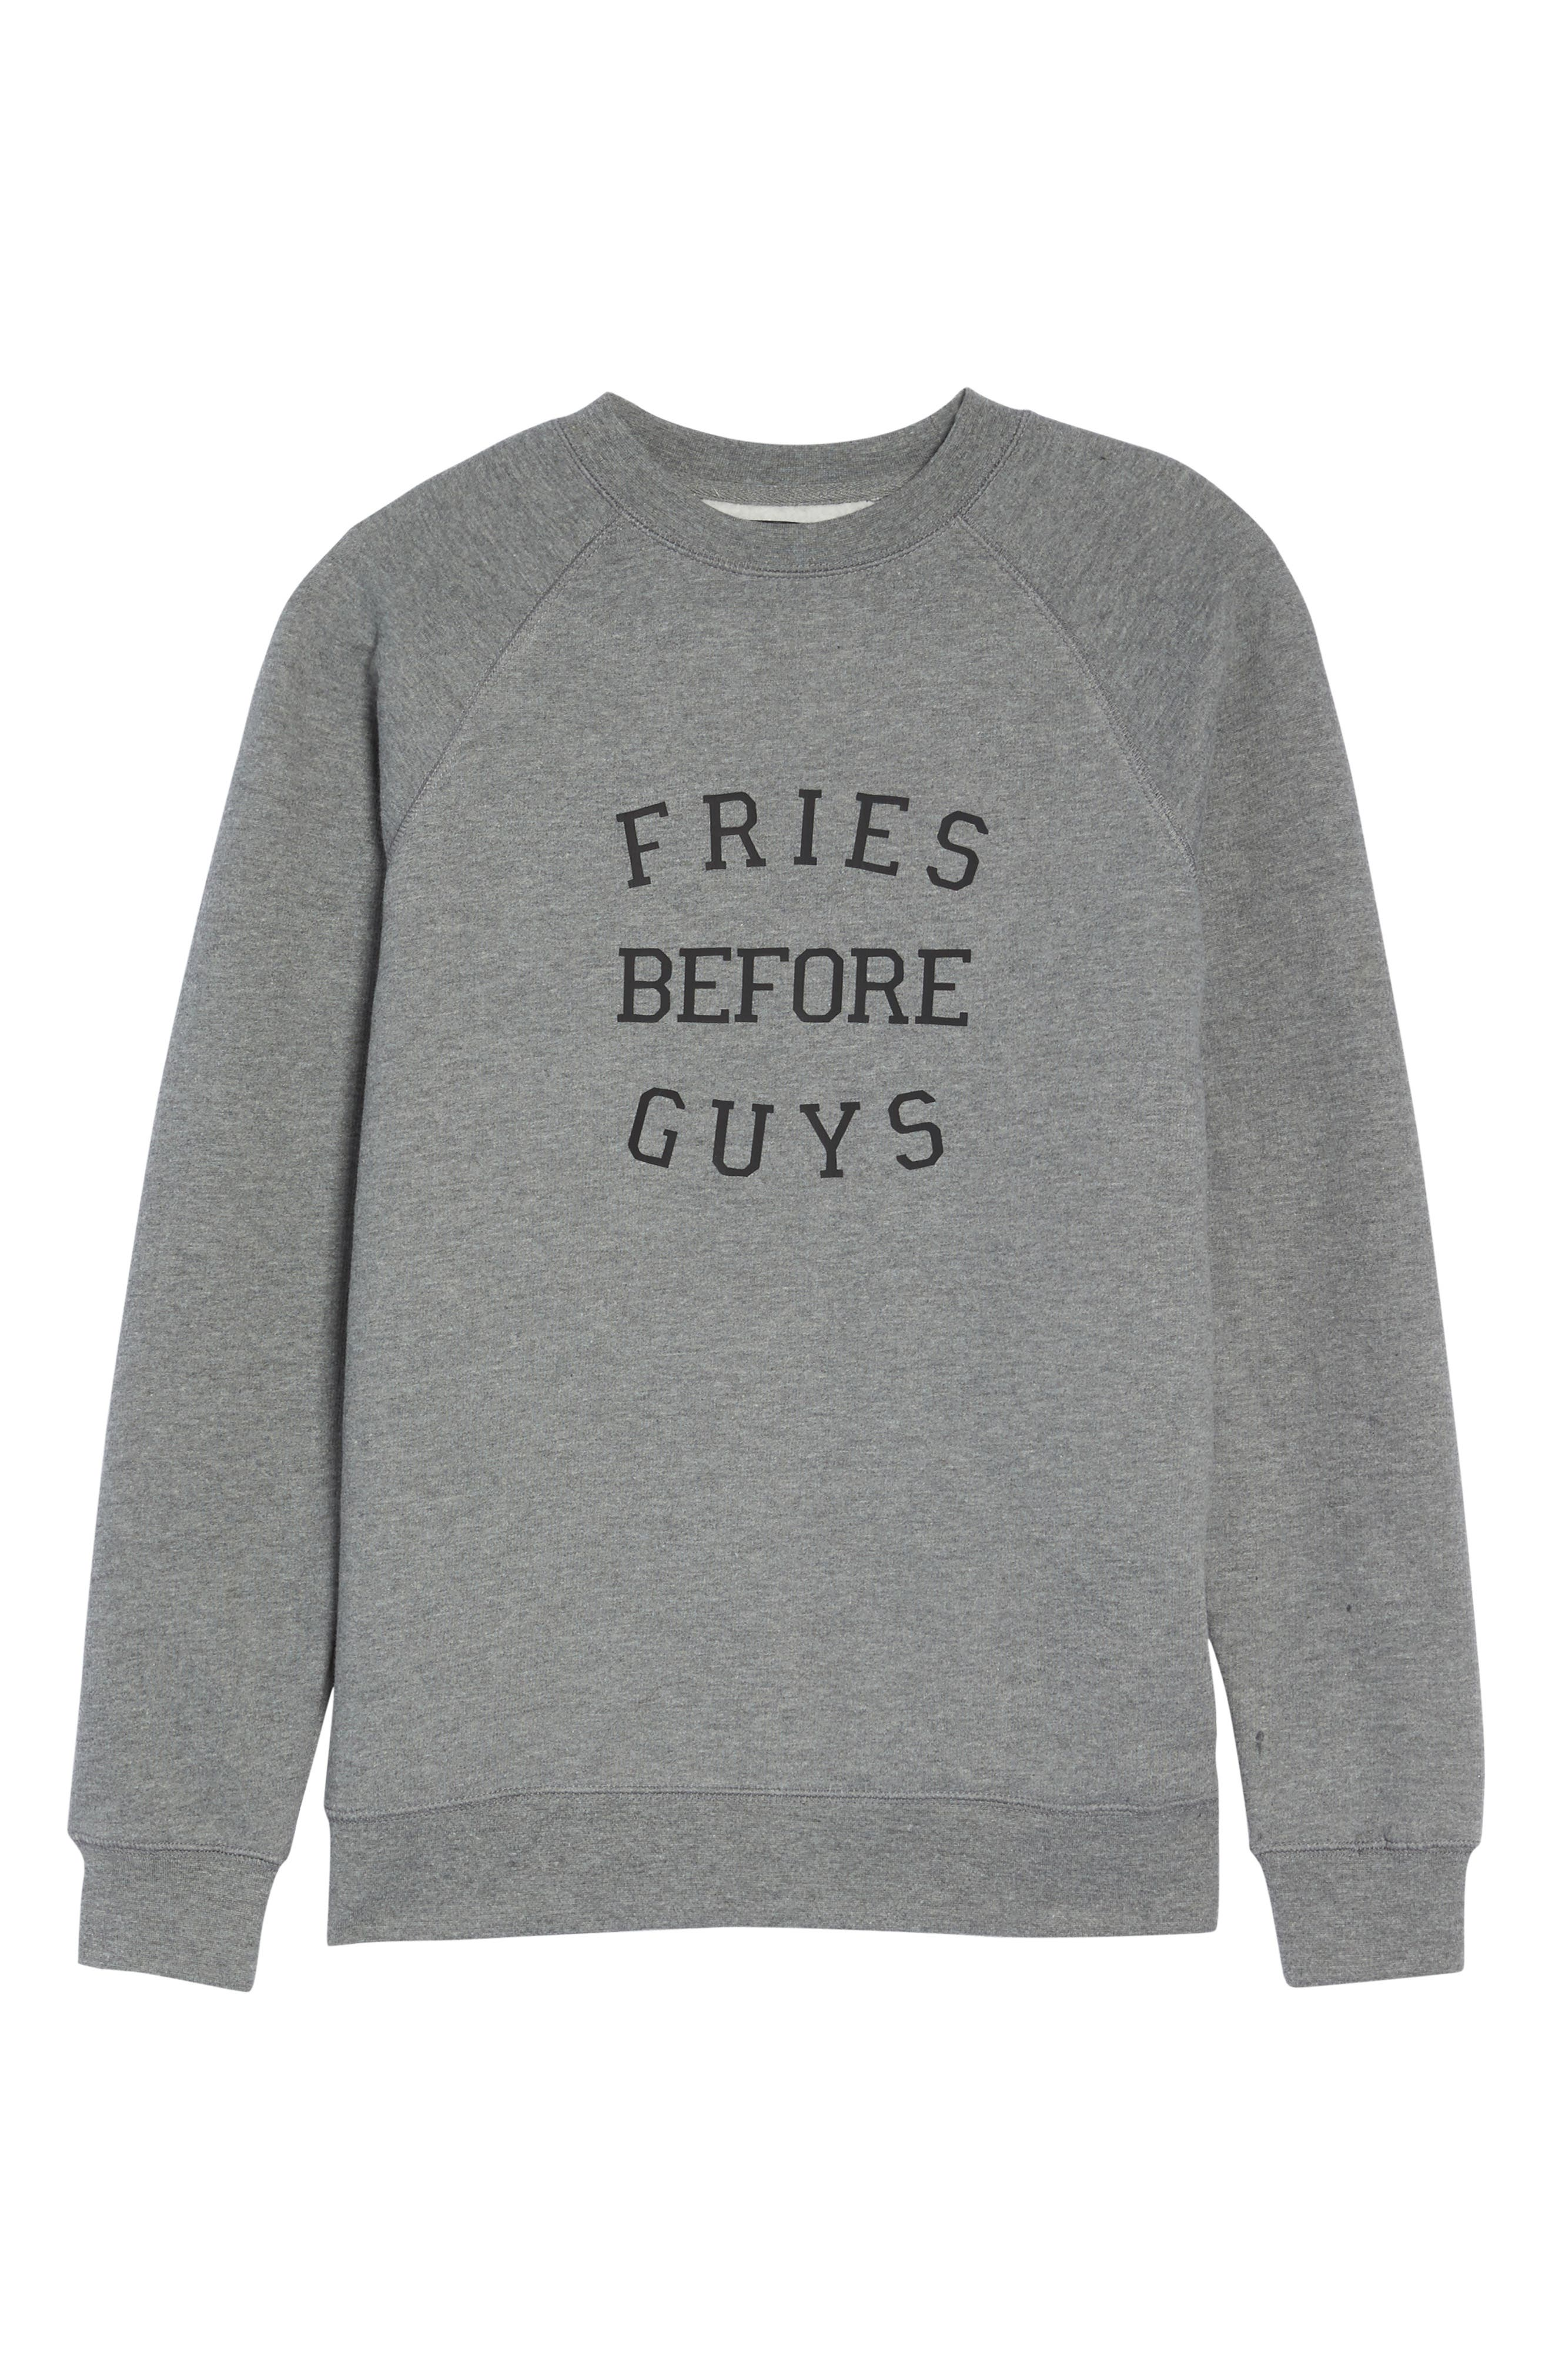 Fries Before Guys Sweatshirt,                             Alternate thumbnail 4, color,                             Grey